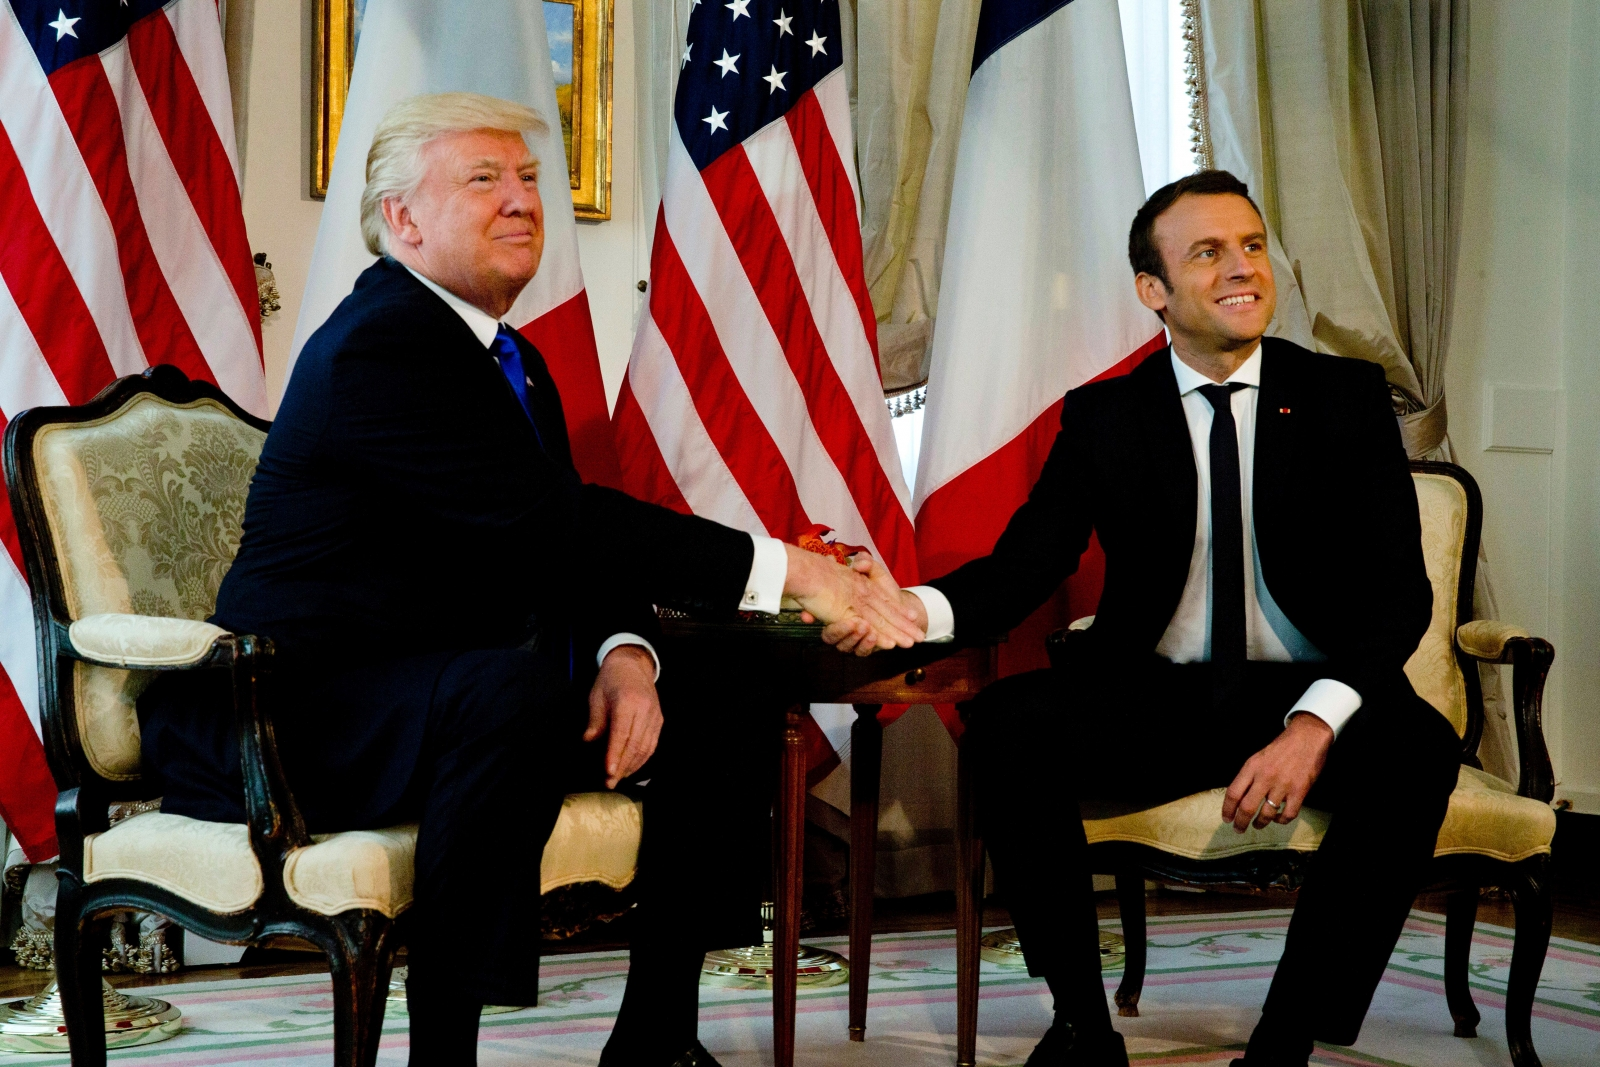 donald-trump-finally-meets-his-hand-shake-match-in-emmanuel-macron